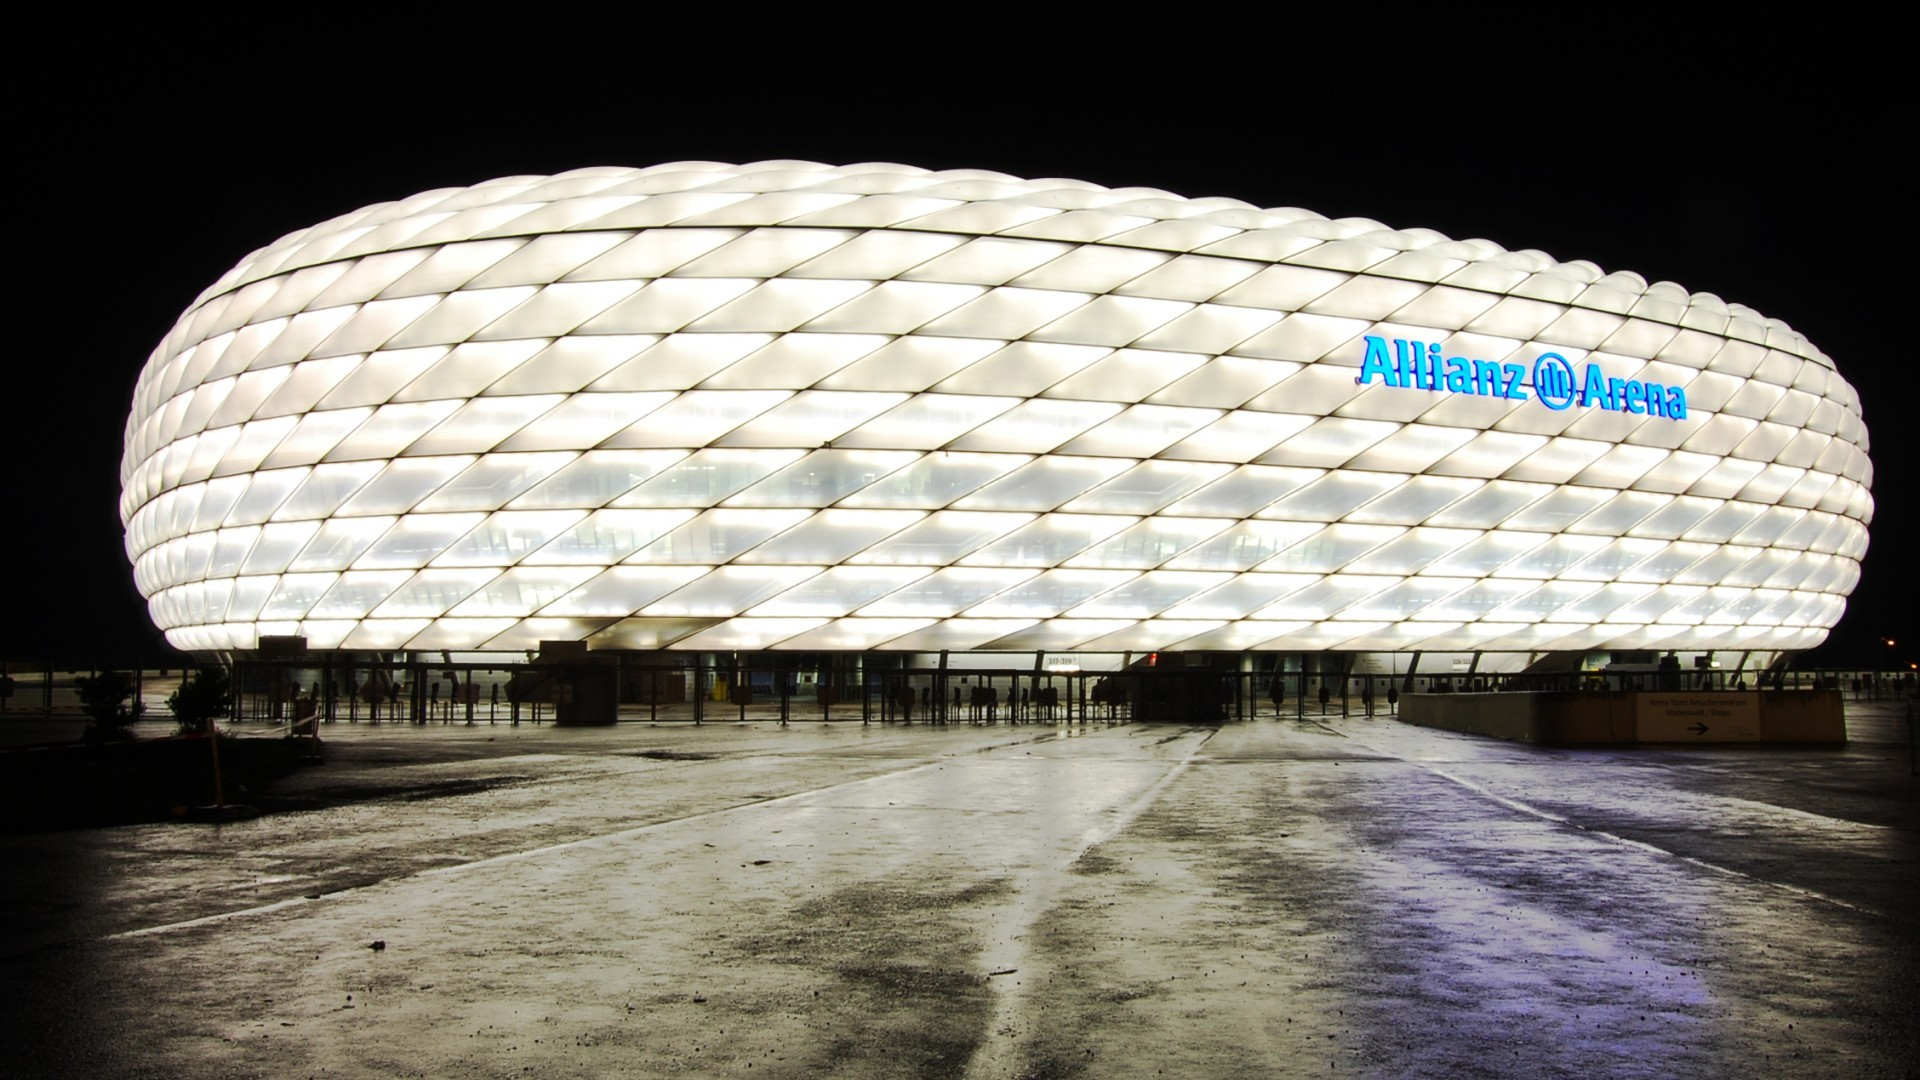 Allianz Arena is also home to two of the established football clubs of  Germany, namely FC Bayern Munich and TSV 1860 Munchen. The Allianz Arena is  also